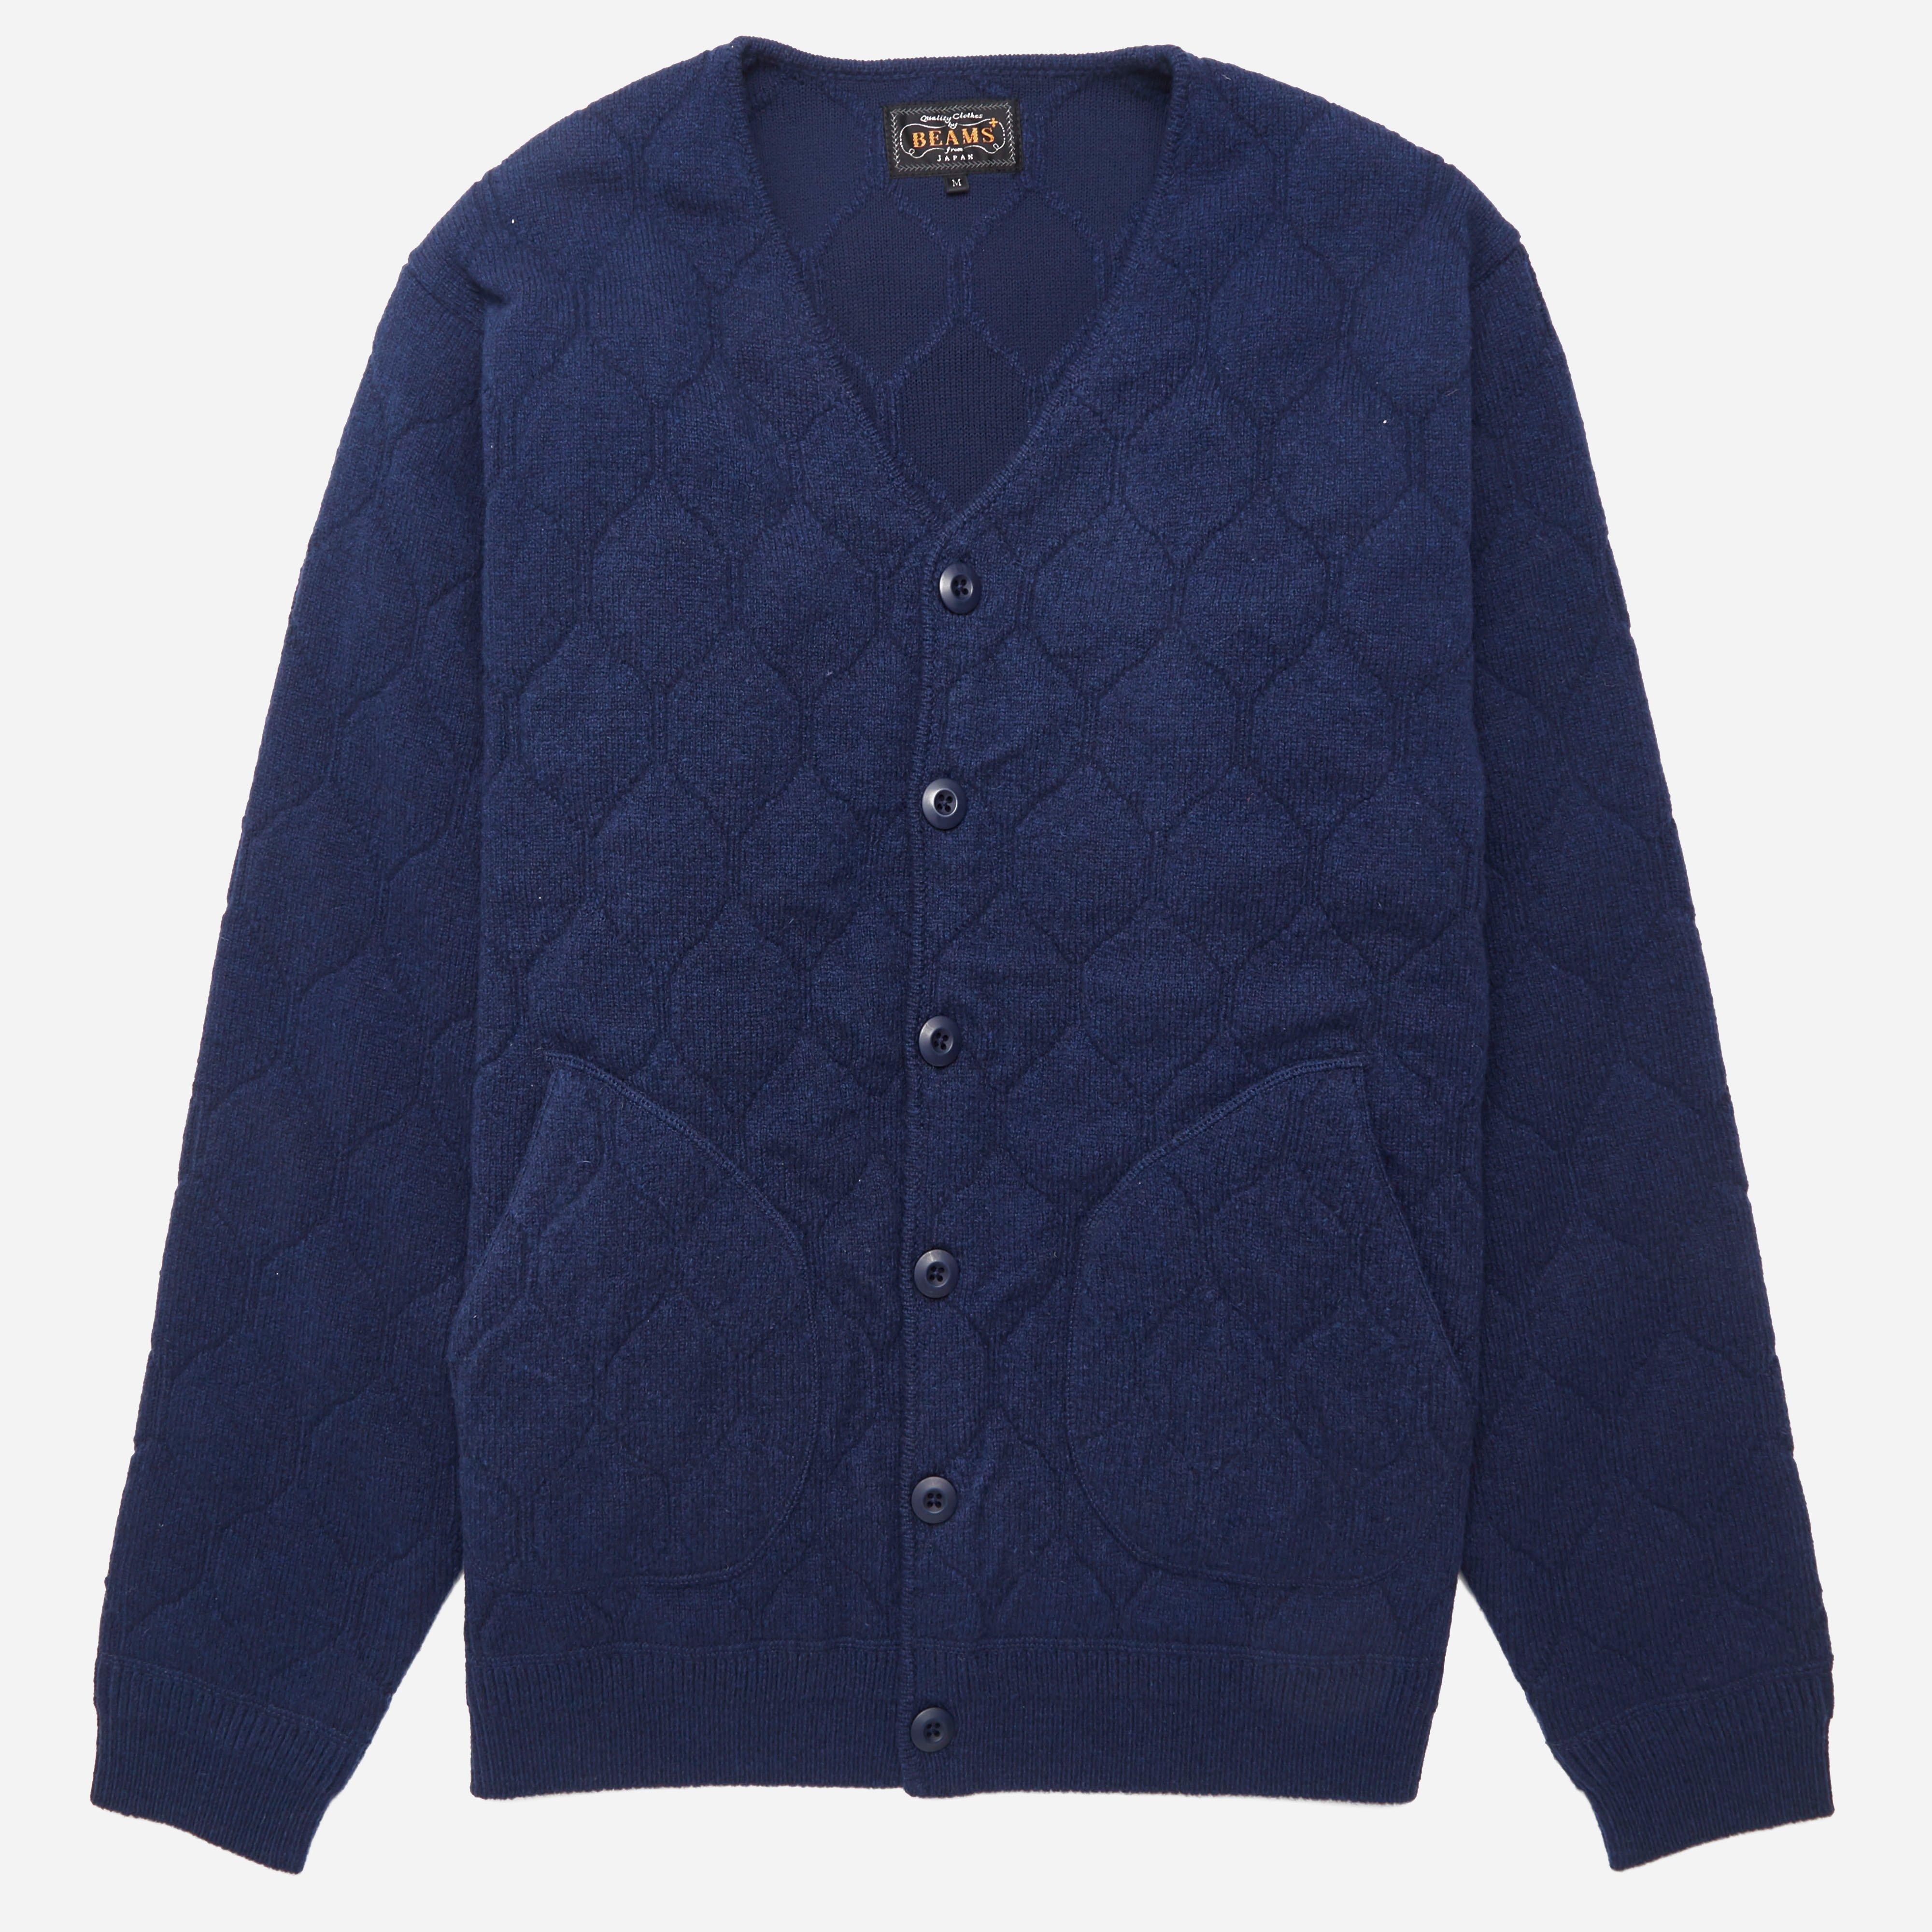 Beams Plus Jacquard Cardigan